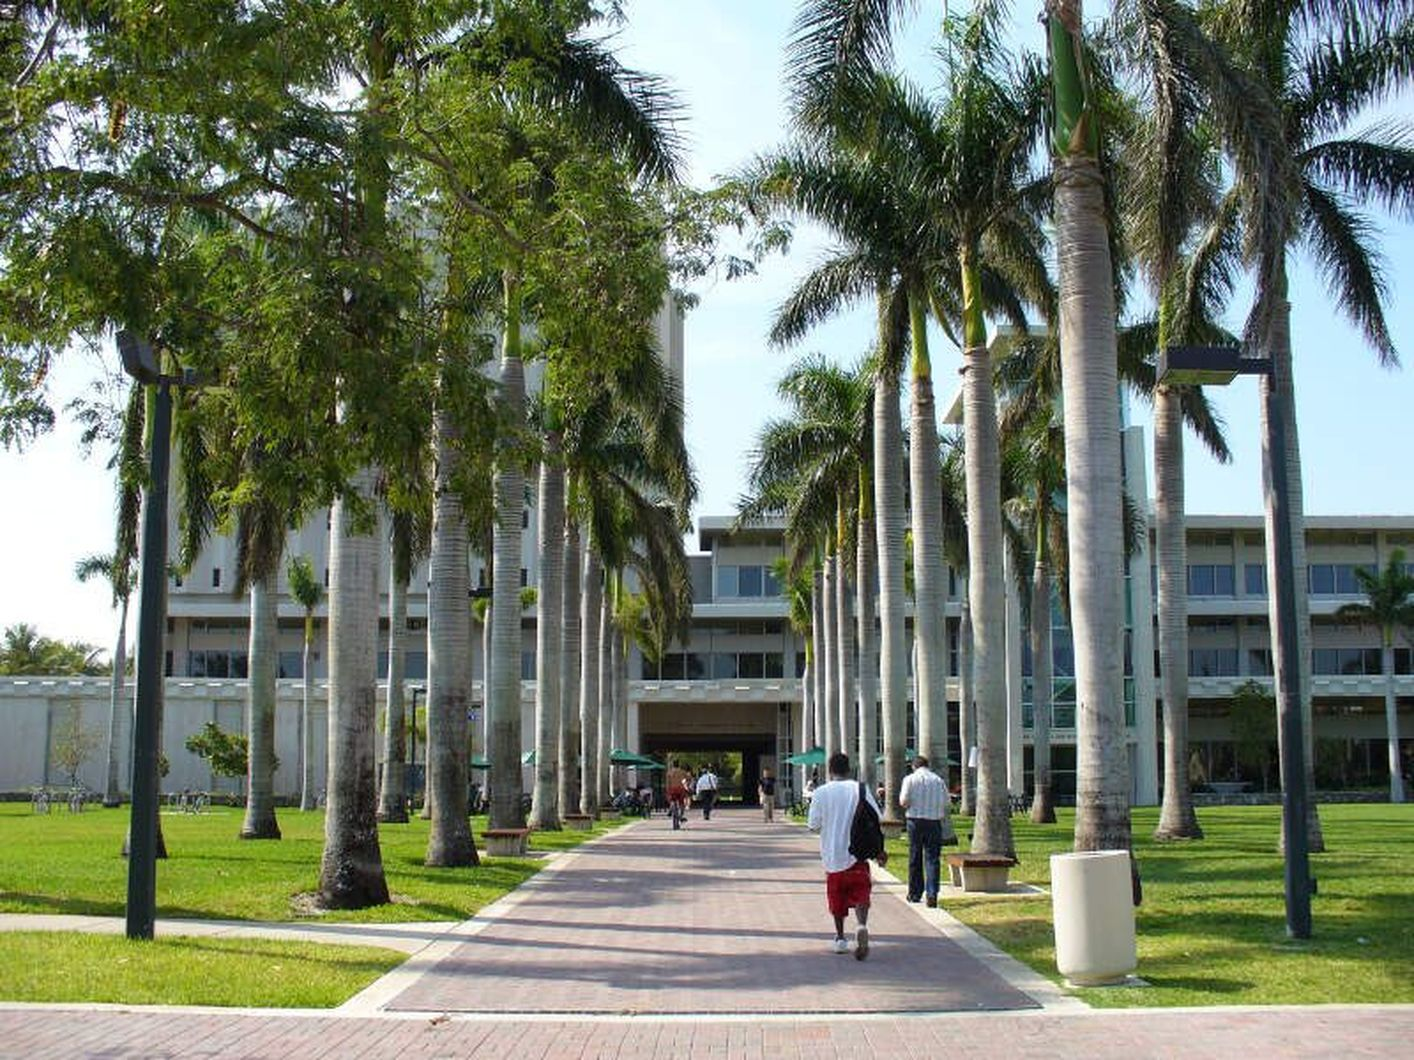 University of Miami Near The Henry Apartments in Coral Gables, FL.